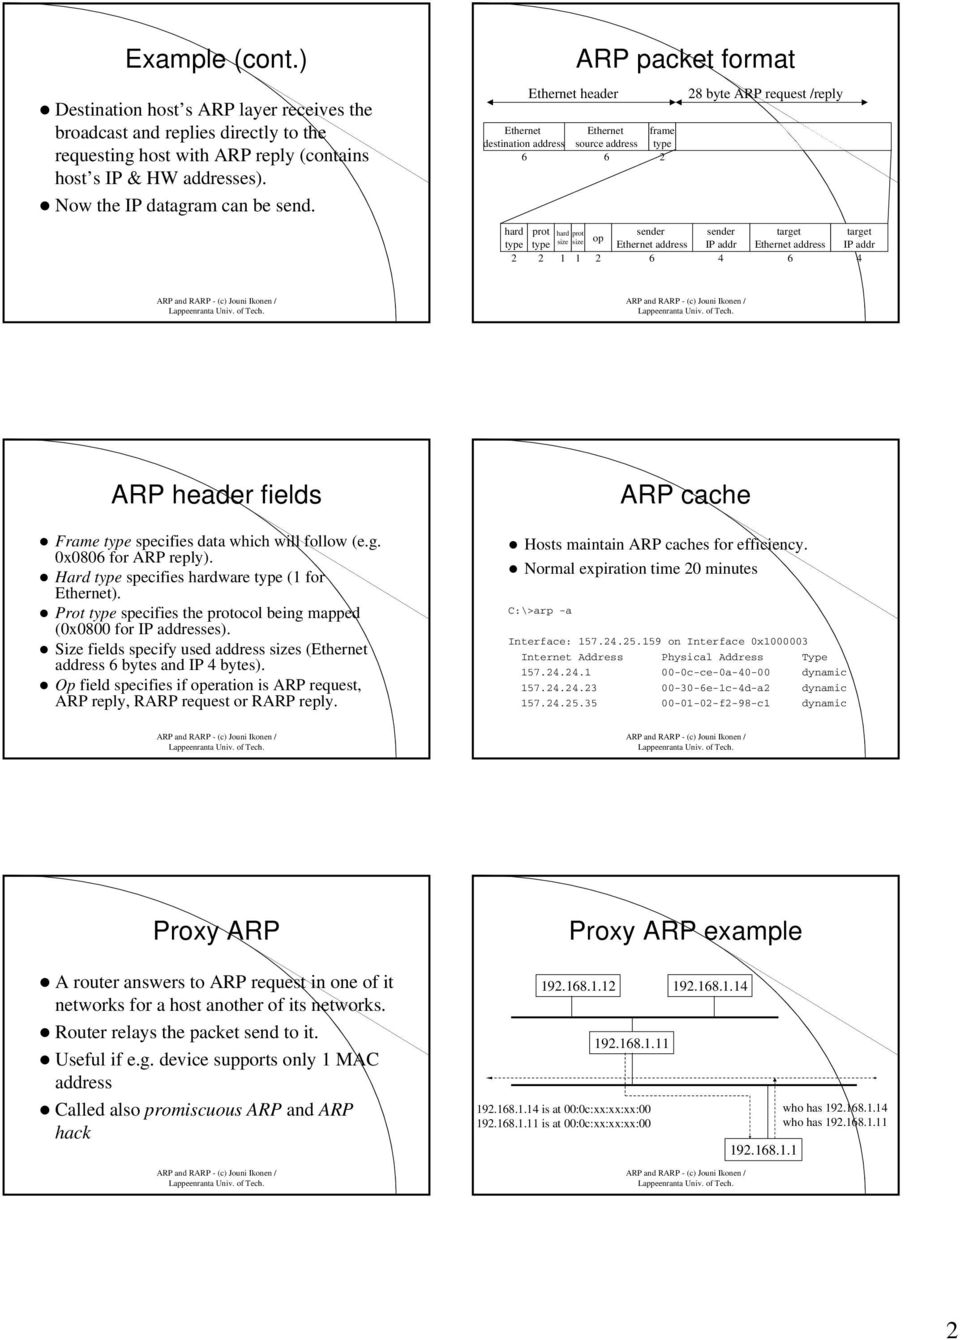 op Ethernet address IP addr Ethernet address IP addr 2 2 1 1 2 6 4 6 4 ARP and RARP - (c) Jouni Ikonen / ARP and RARP - (c) Jouni Ikonen / ARP header fields Frame type specifies data which will